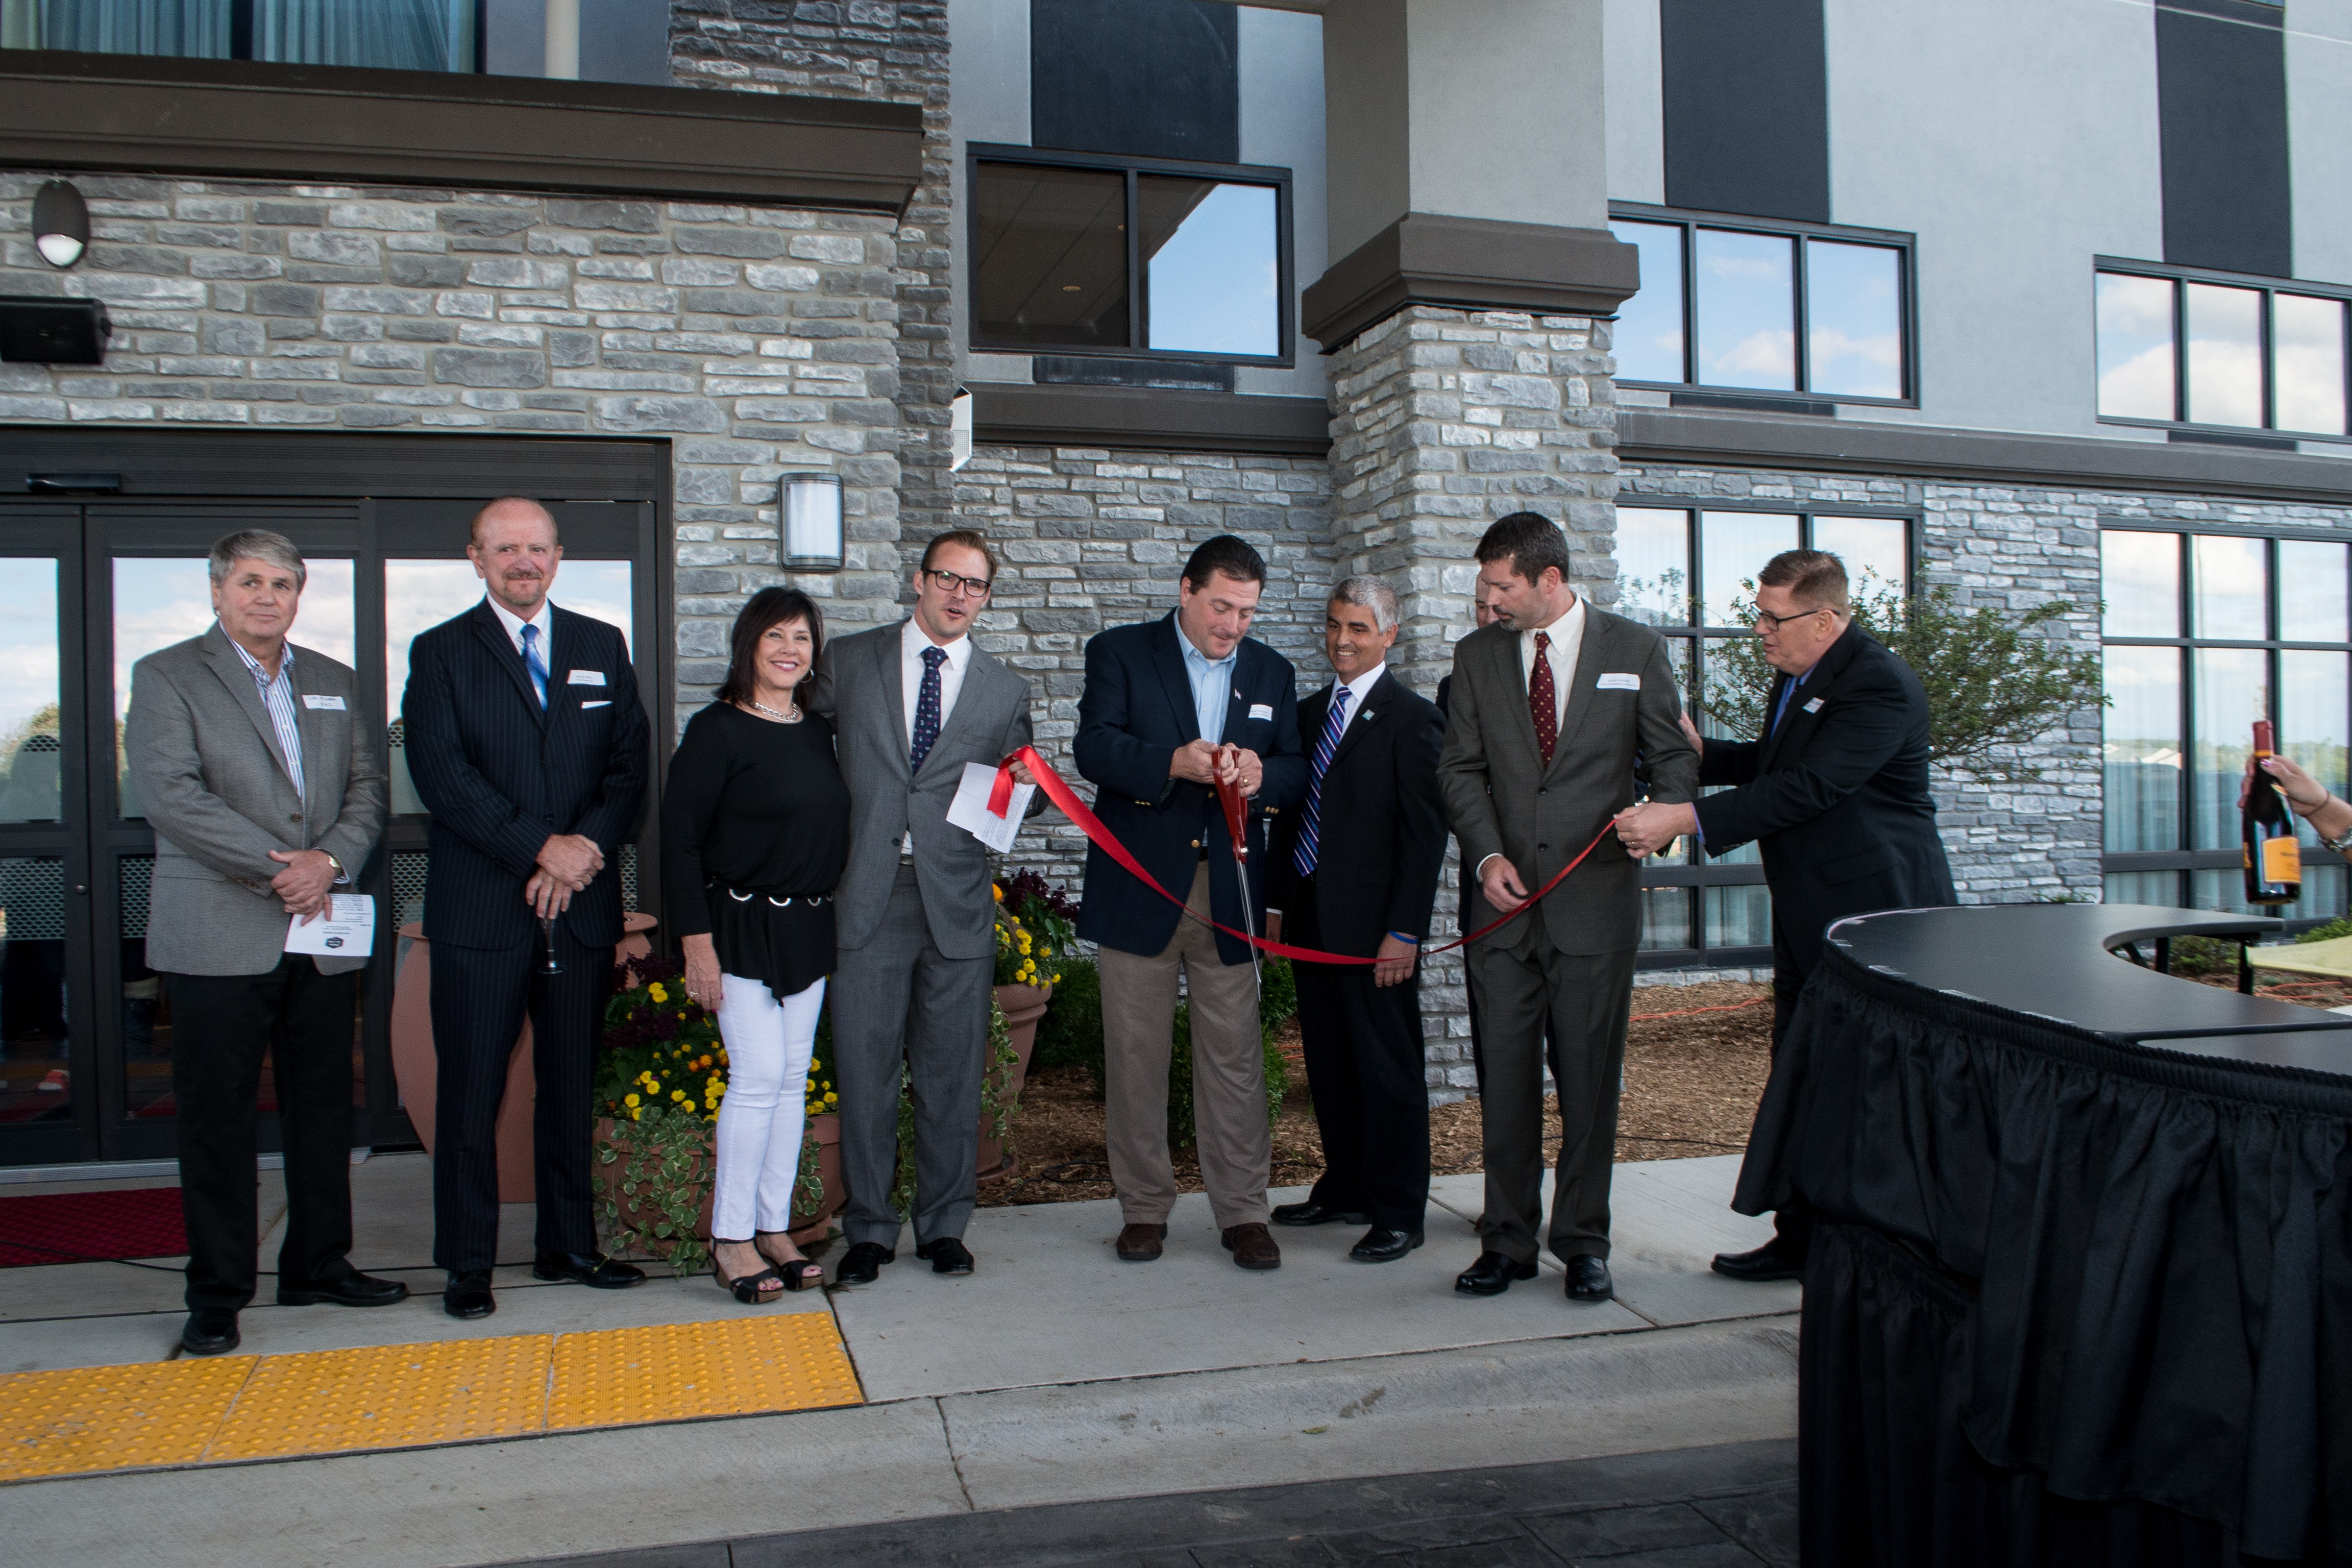 Kinseth Hospitality Companies Announces Ribbon Cutting Grand Opening Celebration At The Hampton Inn Suites Kenosha Wisconsin